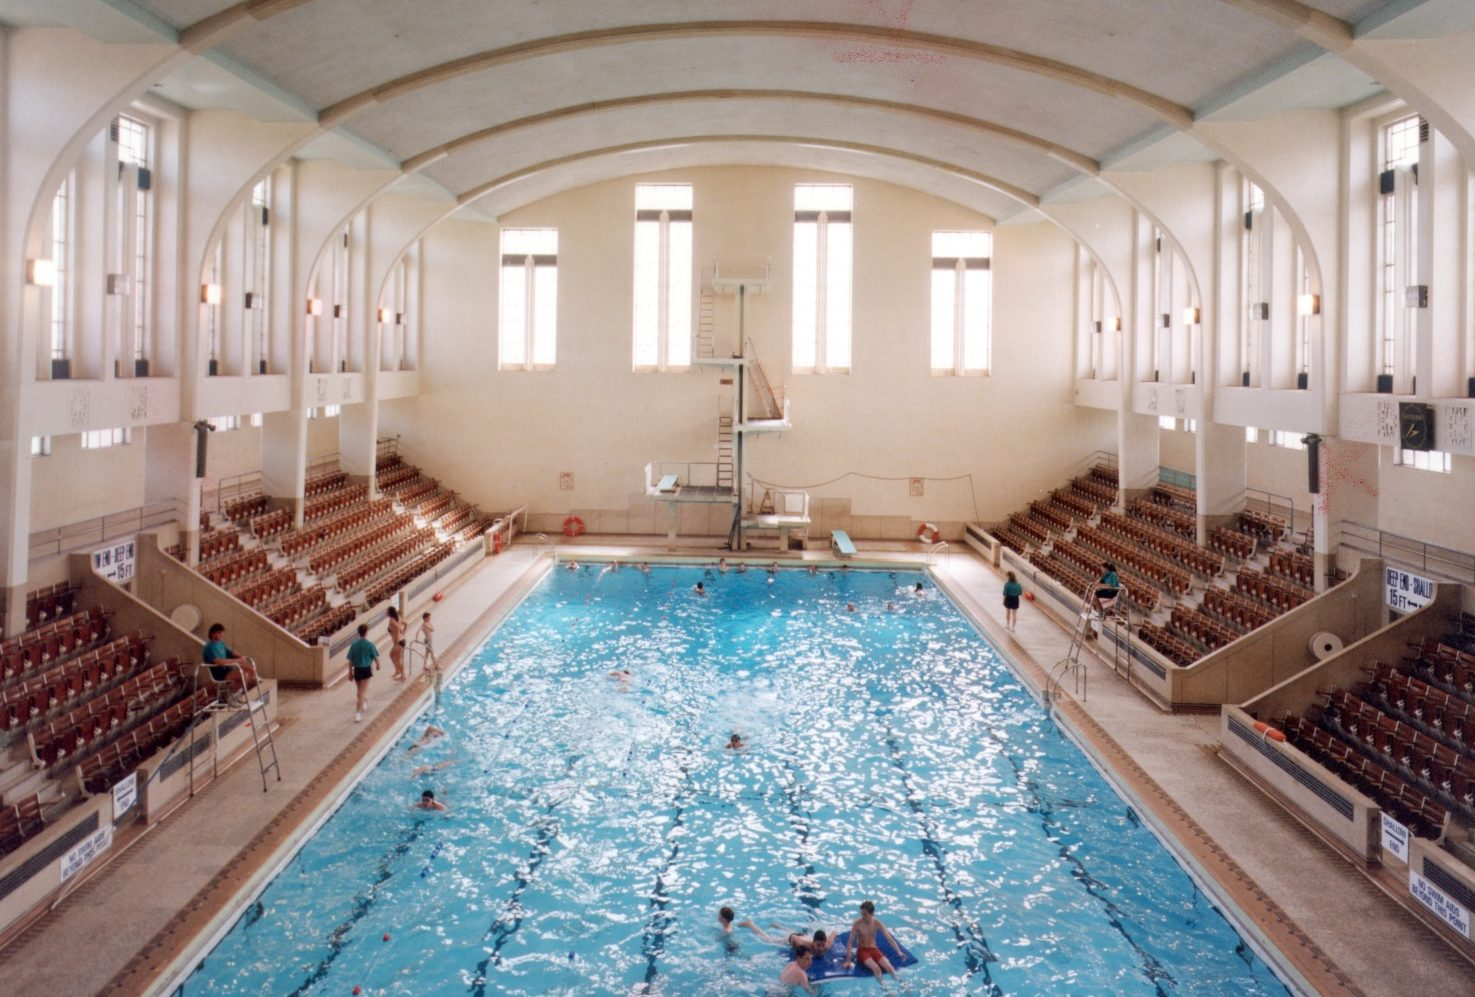 Bon Accord Baths in its heyday.